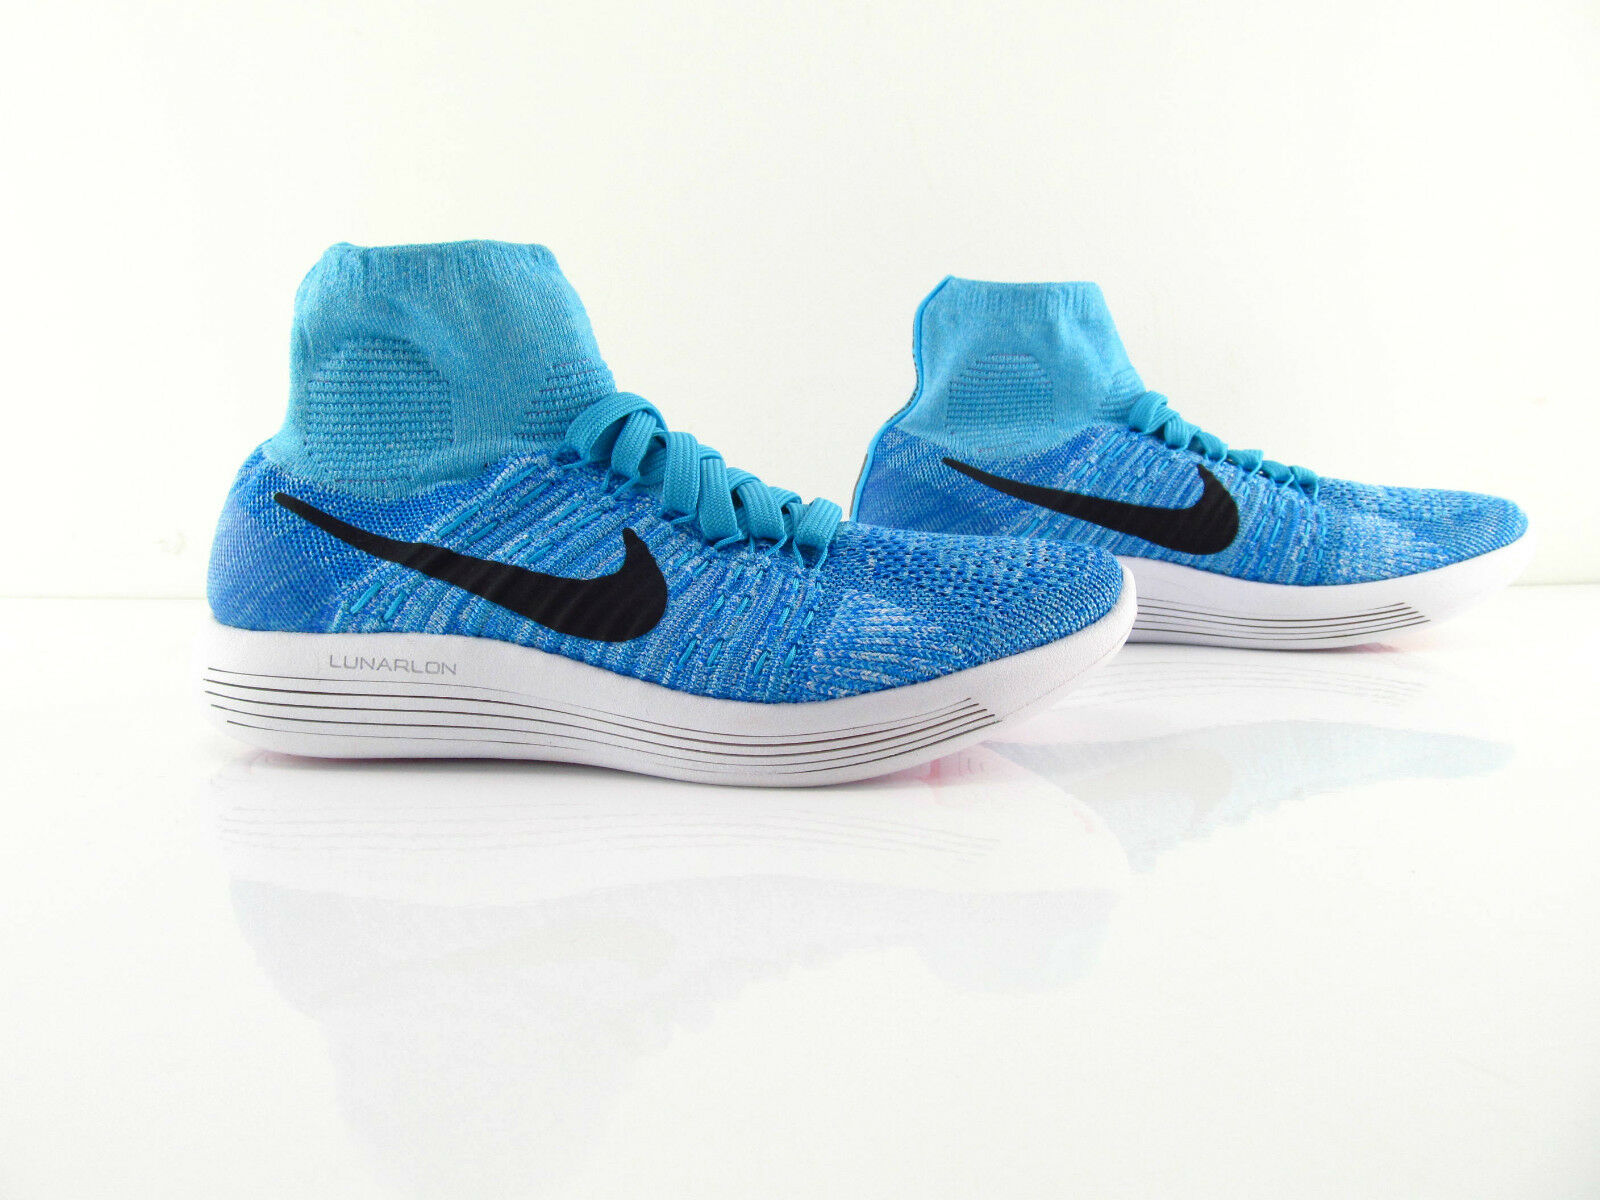 Nike Wmns Lunarepic Flyknit Aqua Gamma bluee Running New US_7.5 UK_5 Eur 38.5